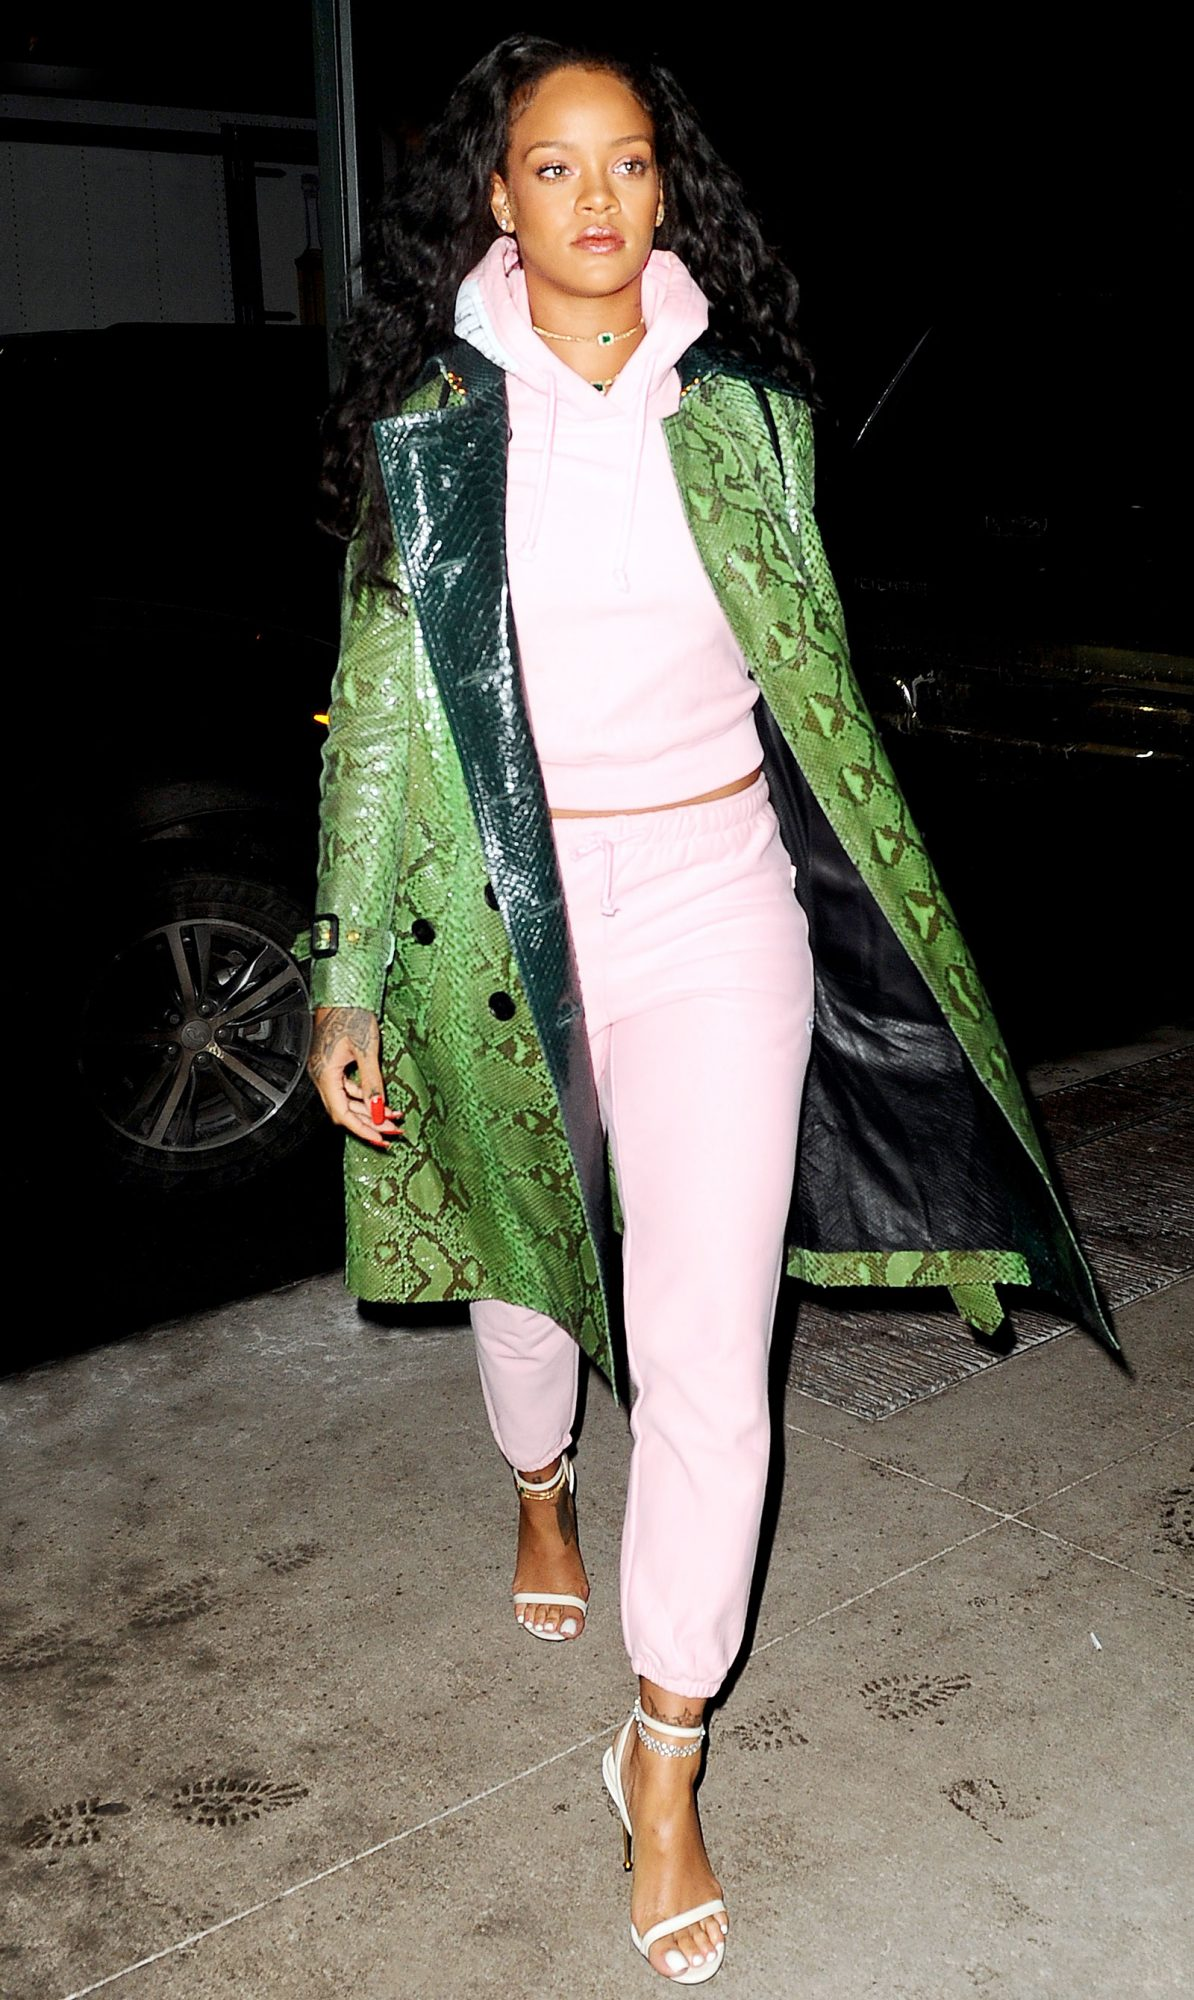 Only RiRi could make kiwi dressing look hot.